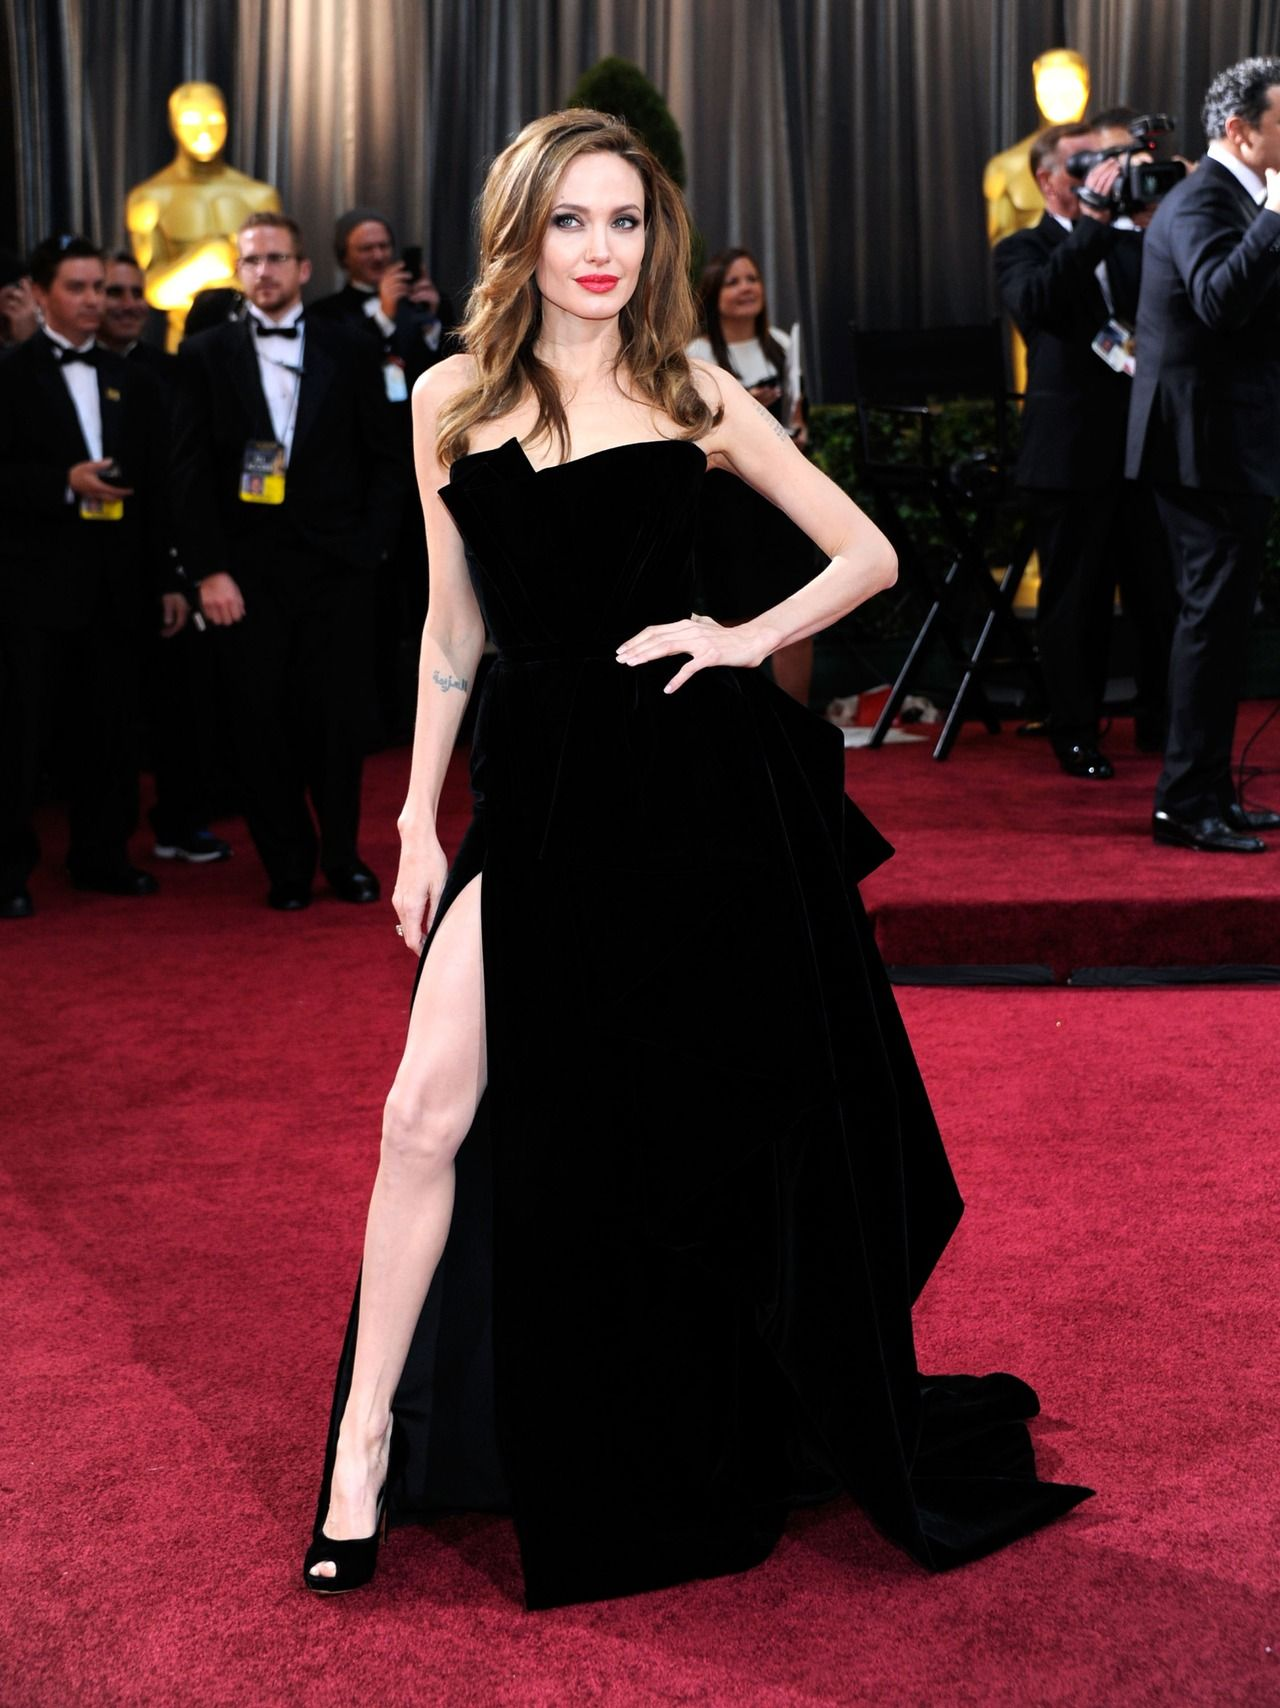 Actress angelina jolie arrives at the th annual academy awards